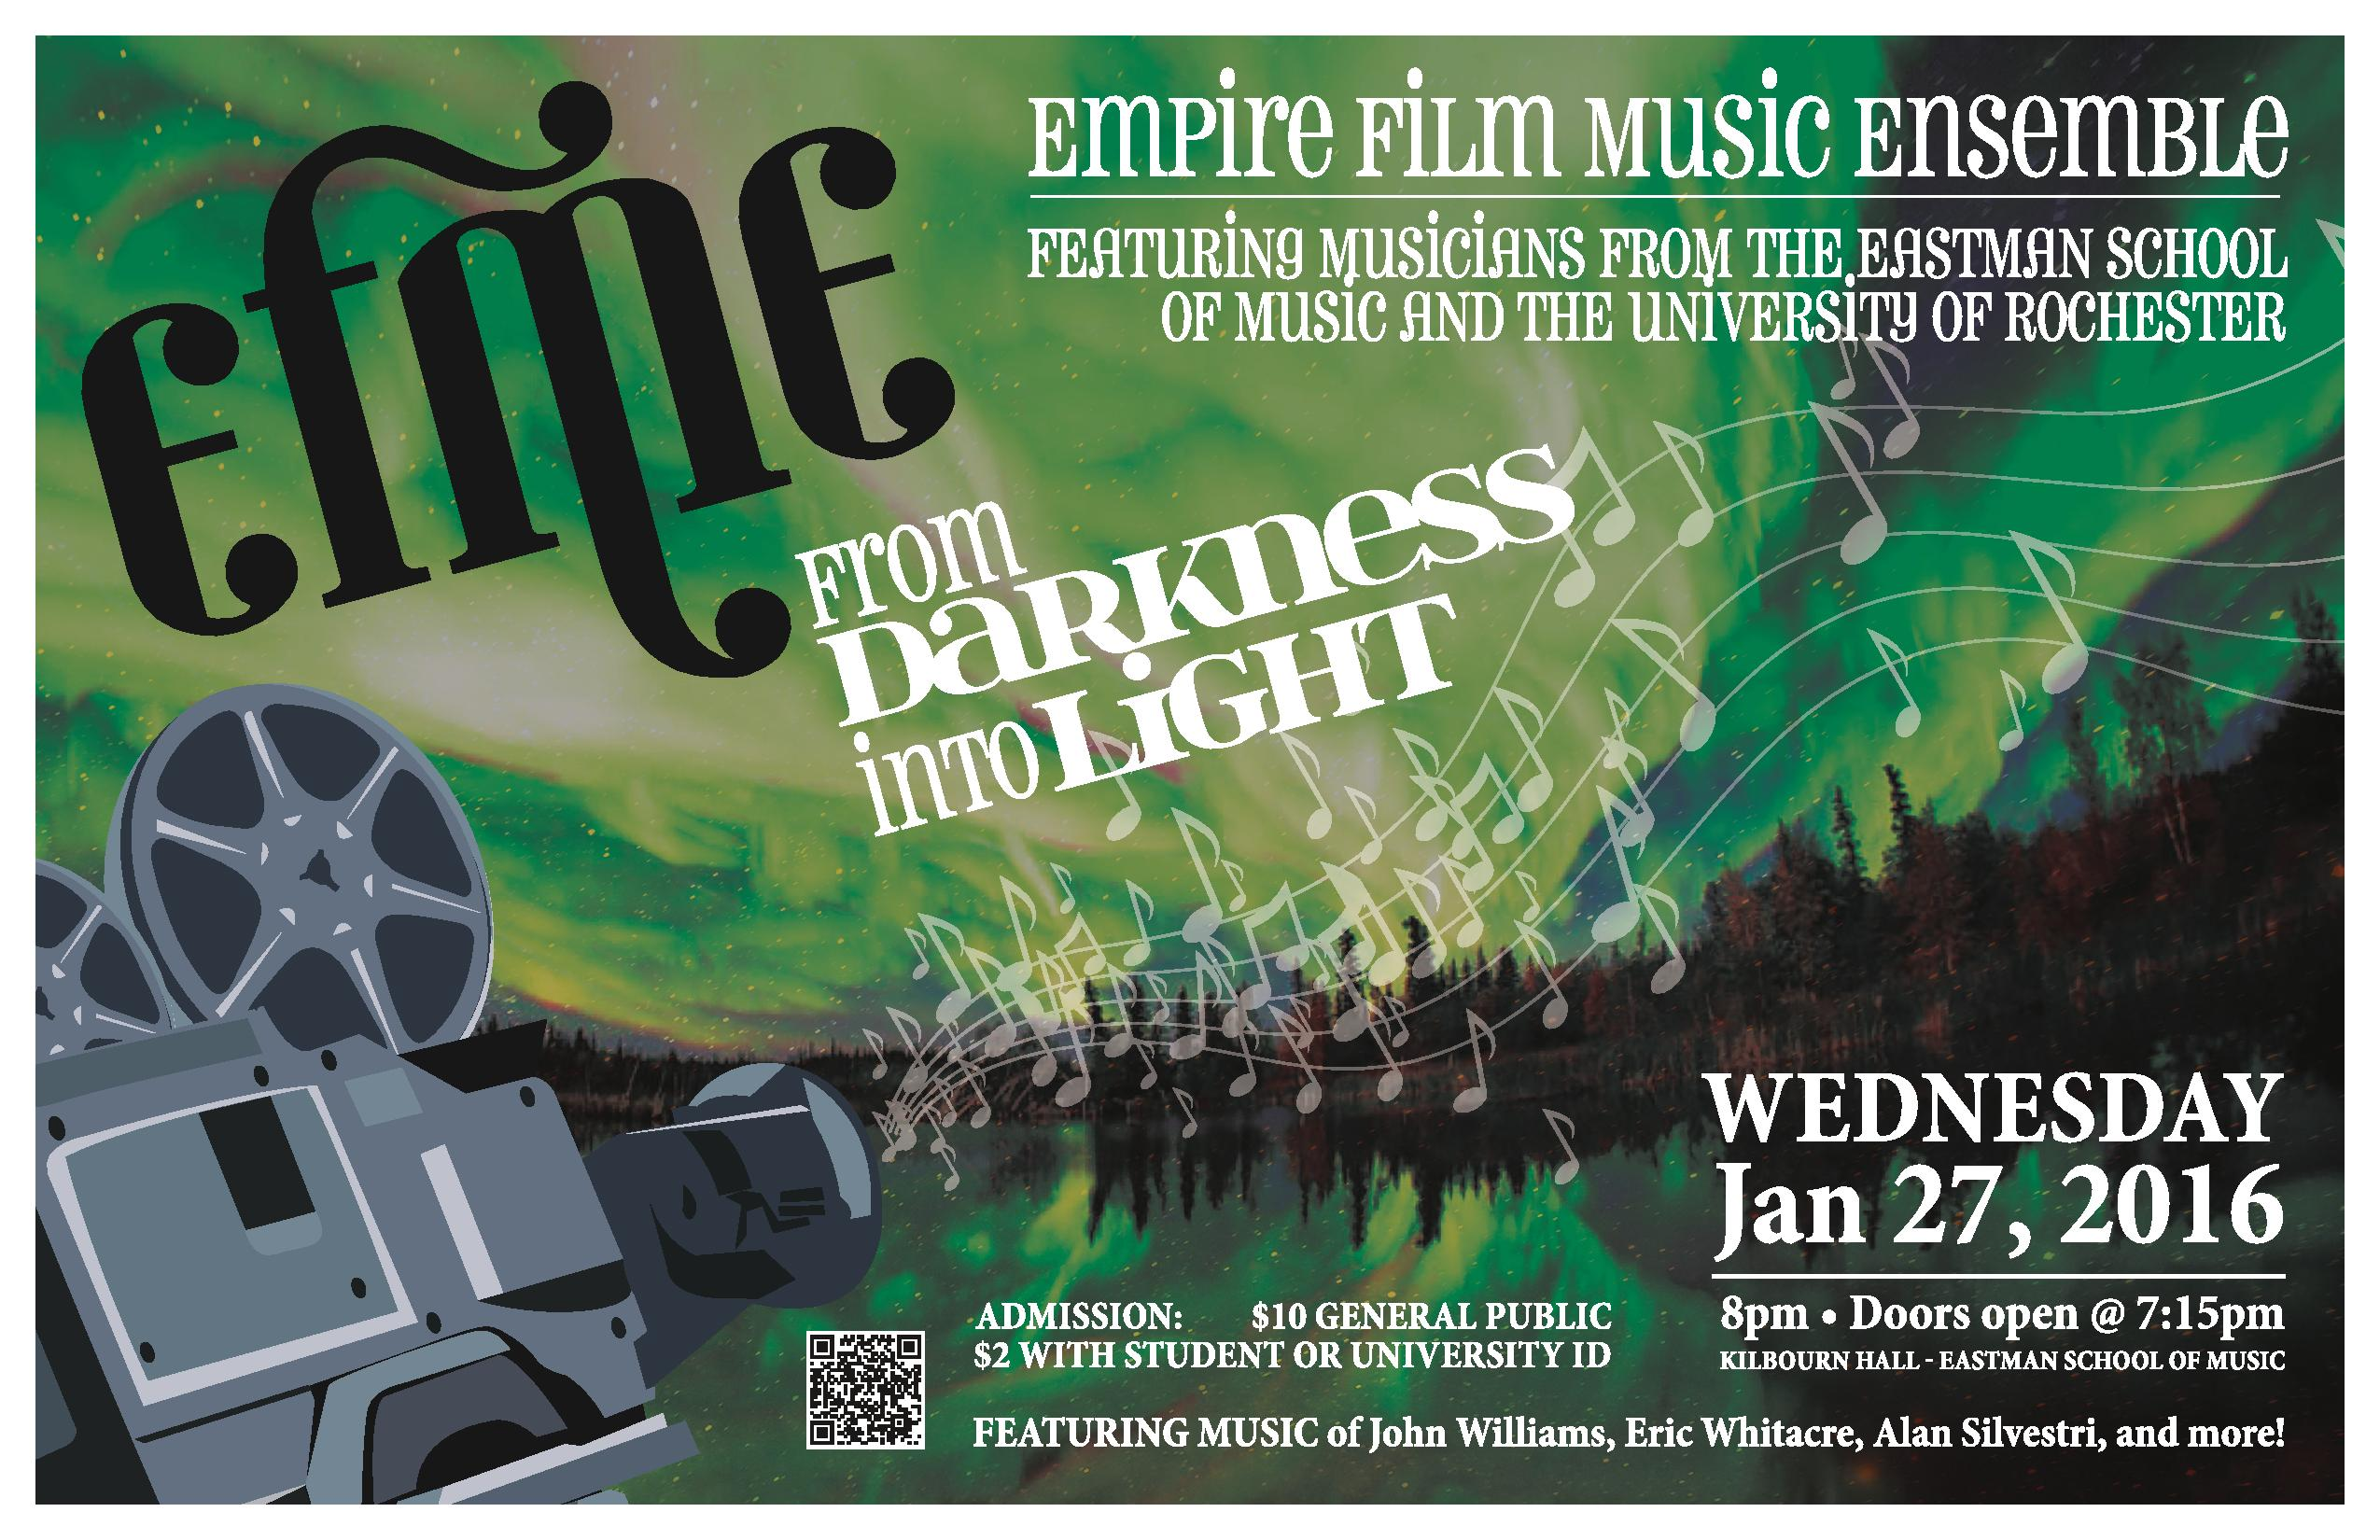 Empire Film Music Ensemble at Eastman